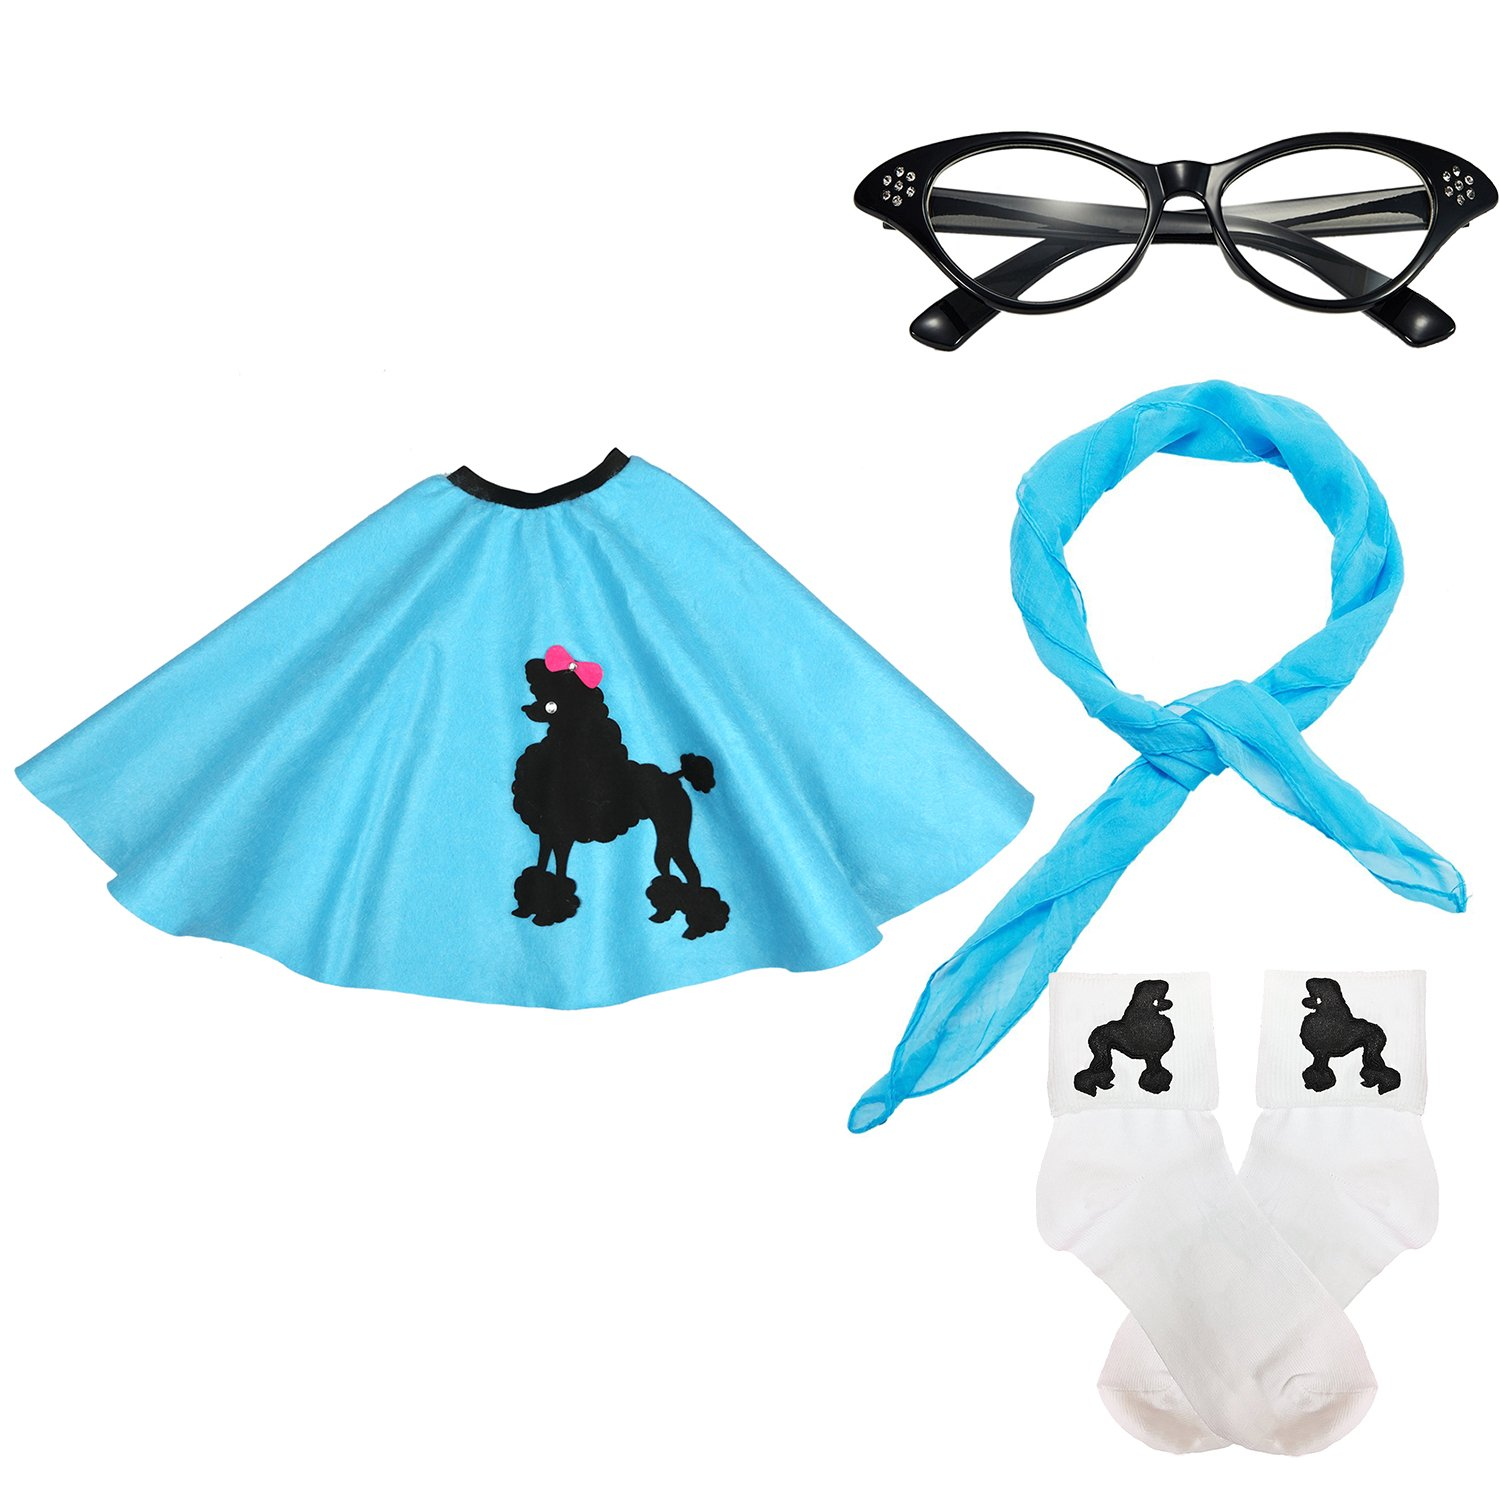 50s Girls Costume Accessory Set - Poodle Skirt, Chiffon Scarf, Cat Eye Glasses,Bobby Socks,Blue by QNPRT